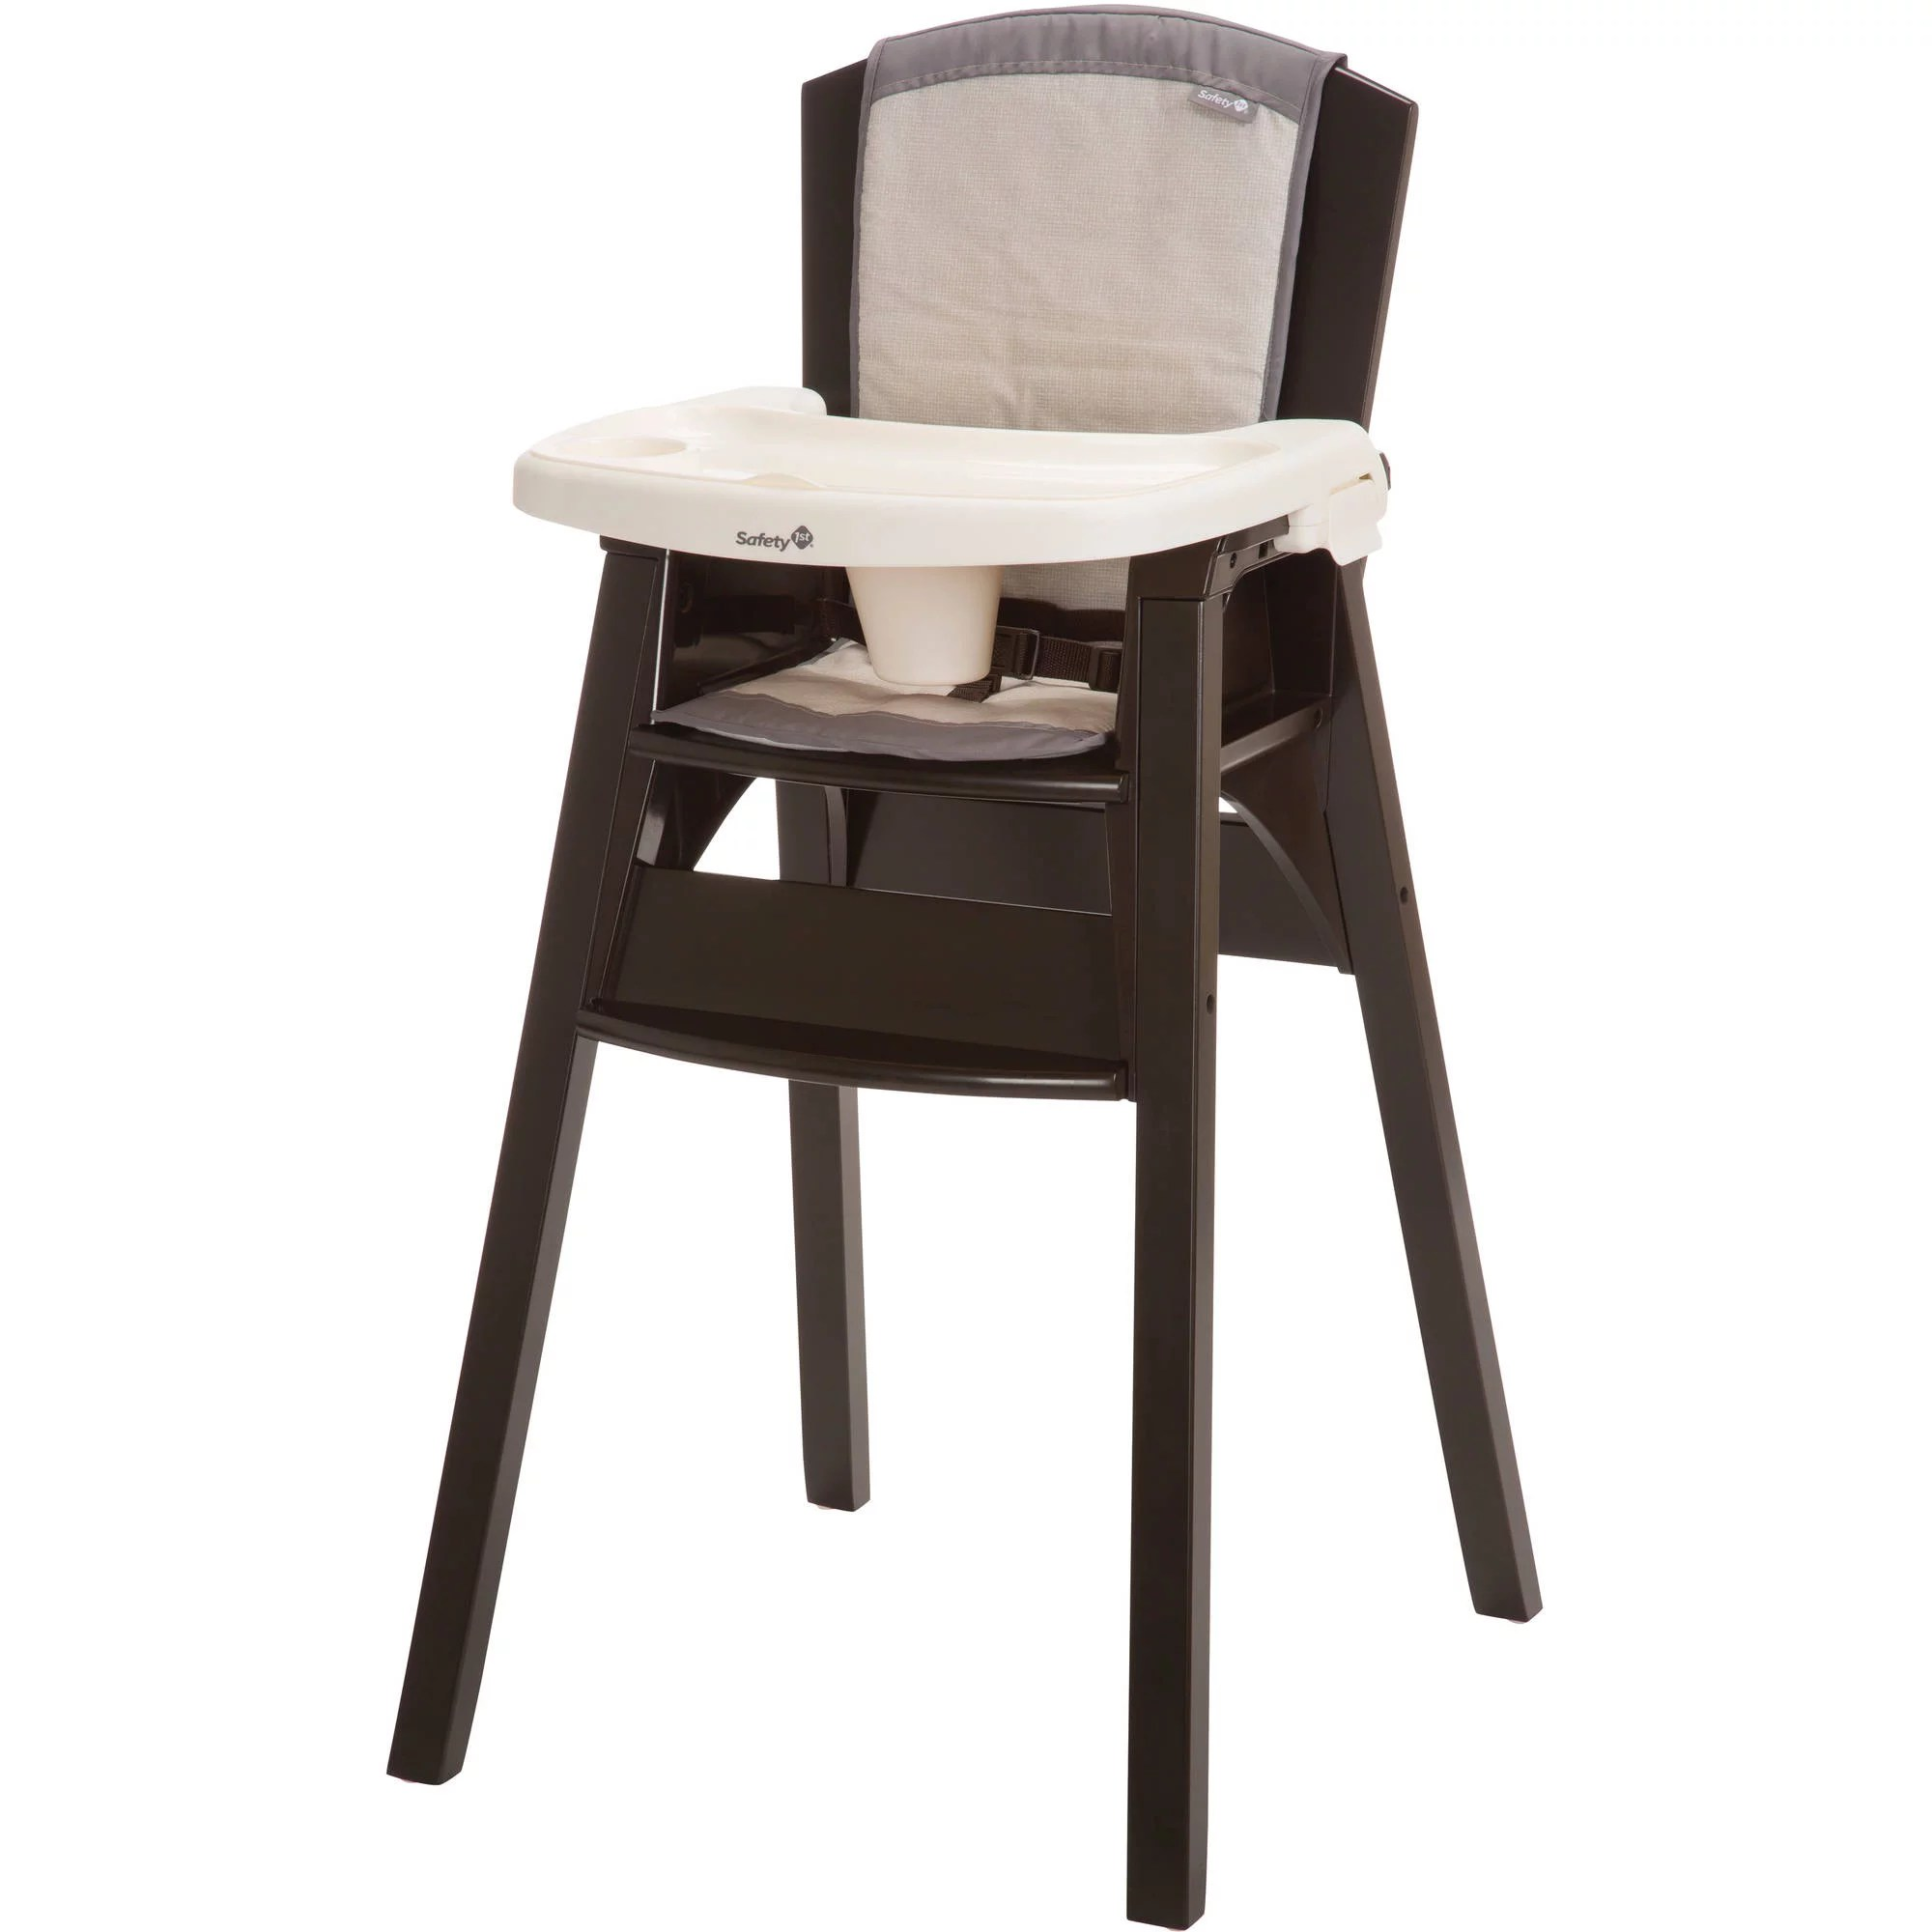 padded high chair leather reclining safety 1st wood beaumont walmart com